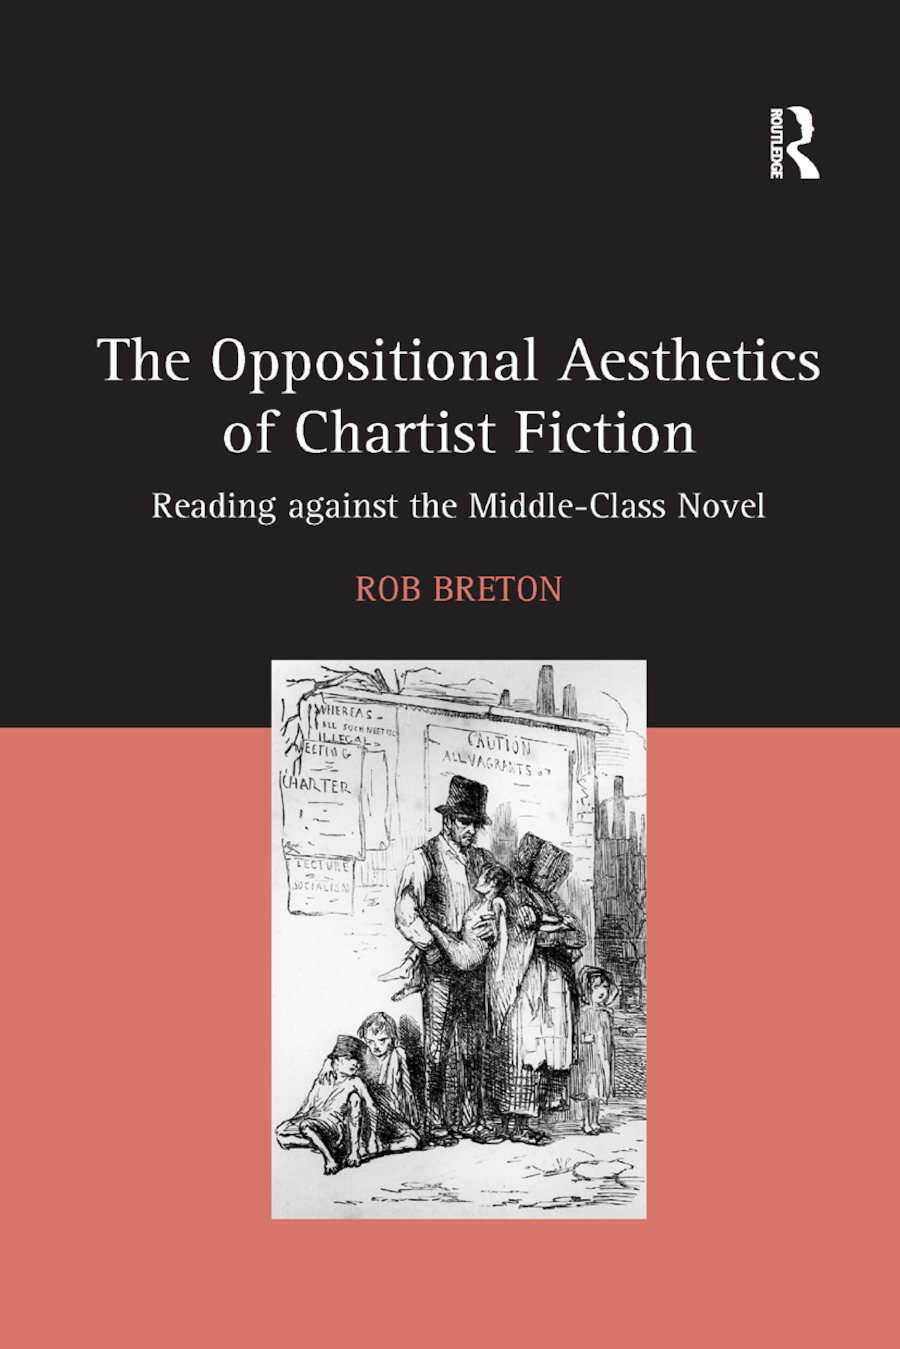 The Oppositional Aesthetics of Chartist Fiction: Reading against the Middle-Class Novel book cover